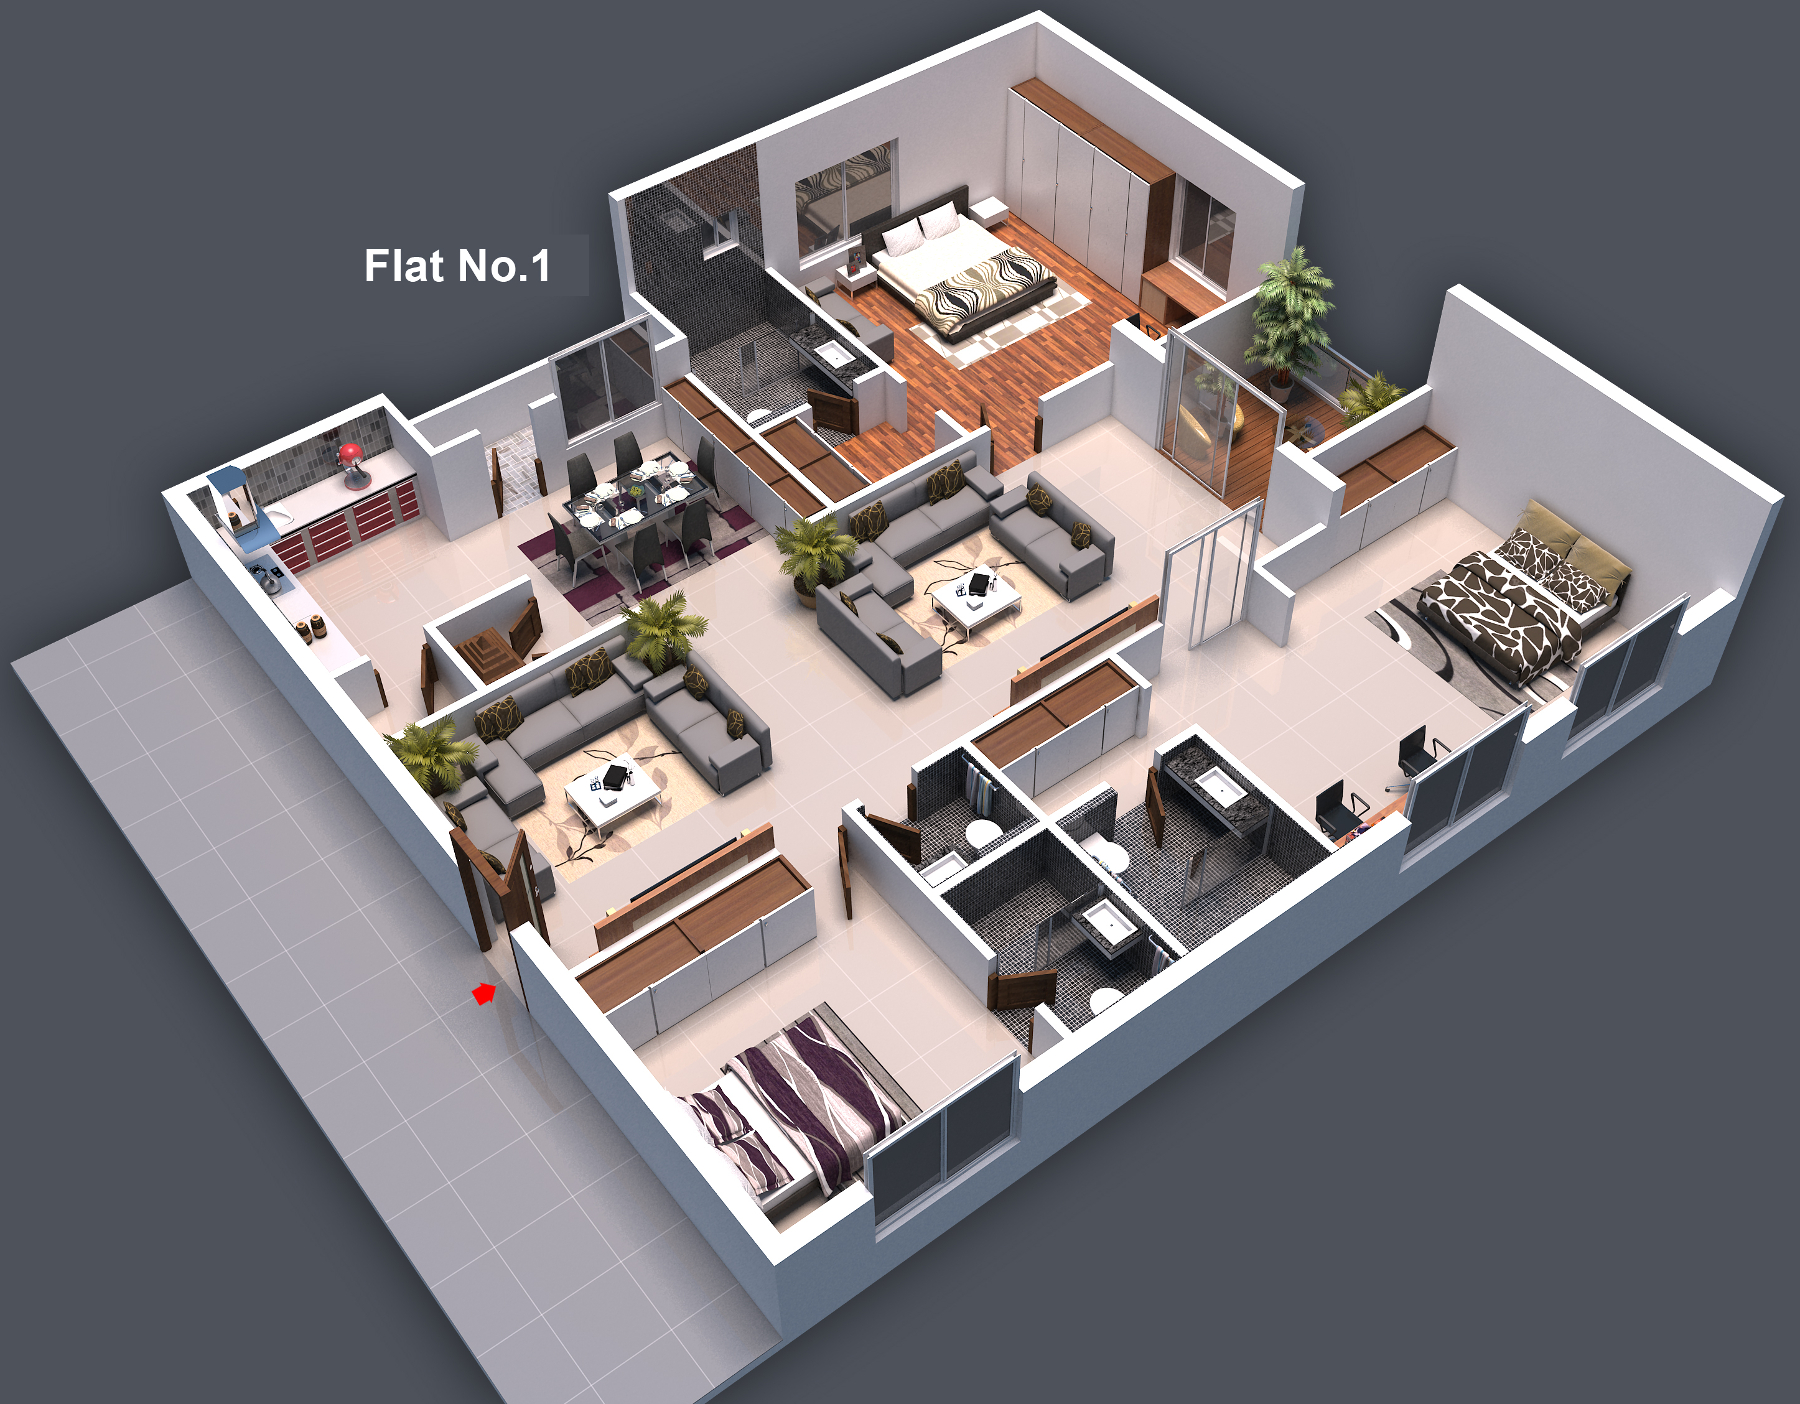 Jd jubilee ballpark in yousufguda hyderabad price for Homeplans com reviews